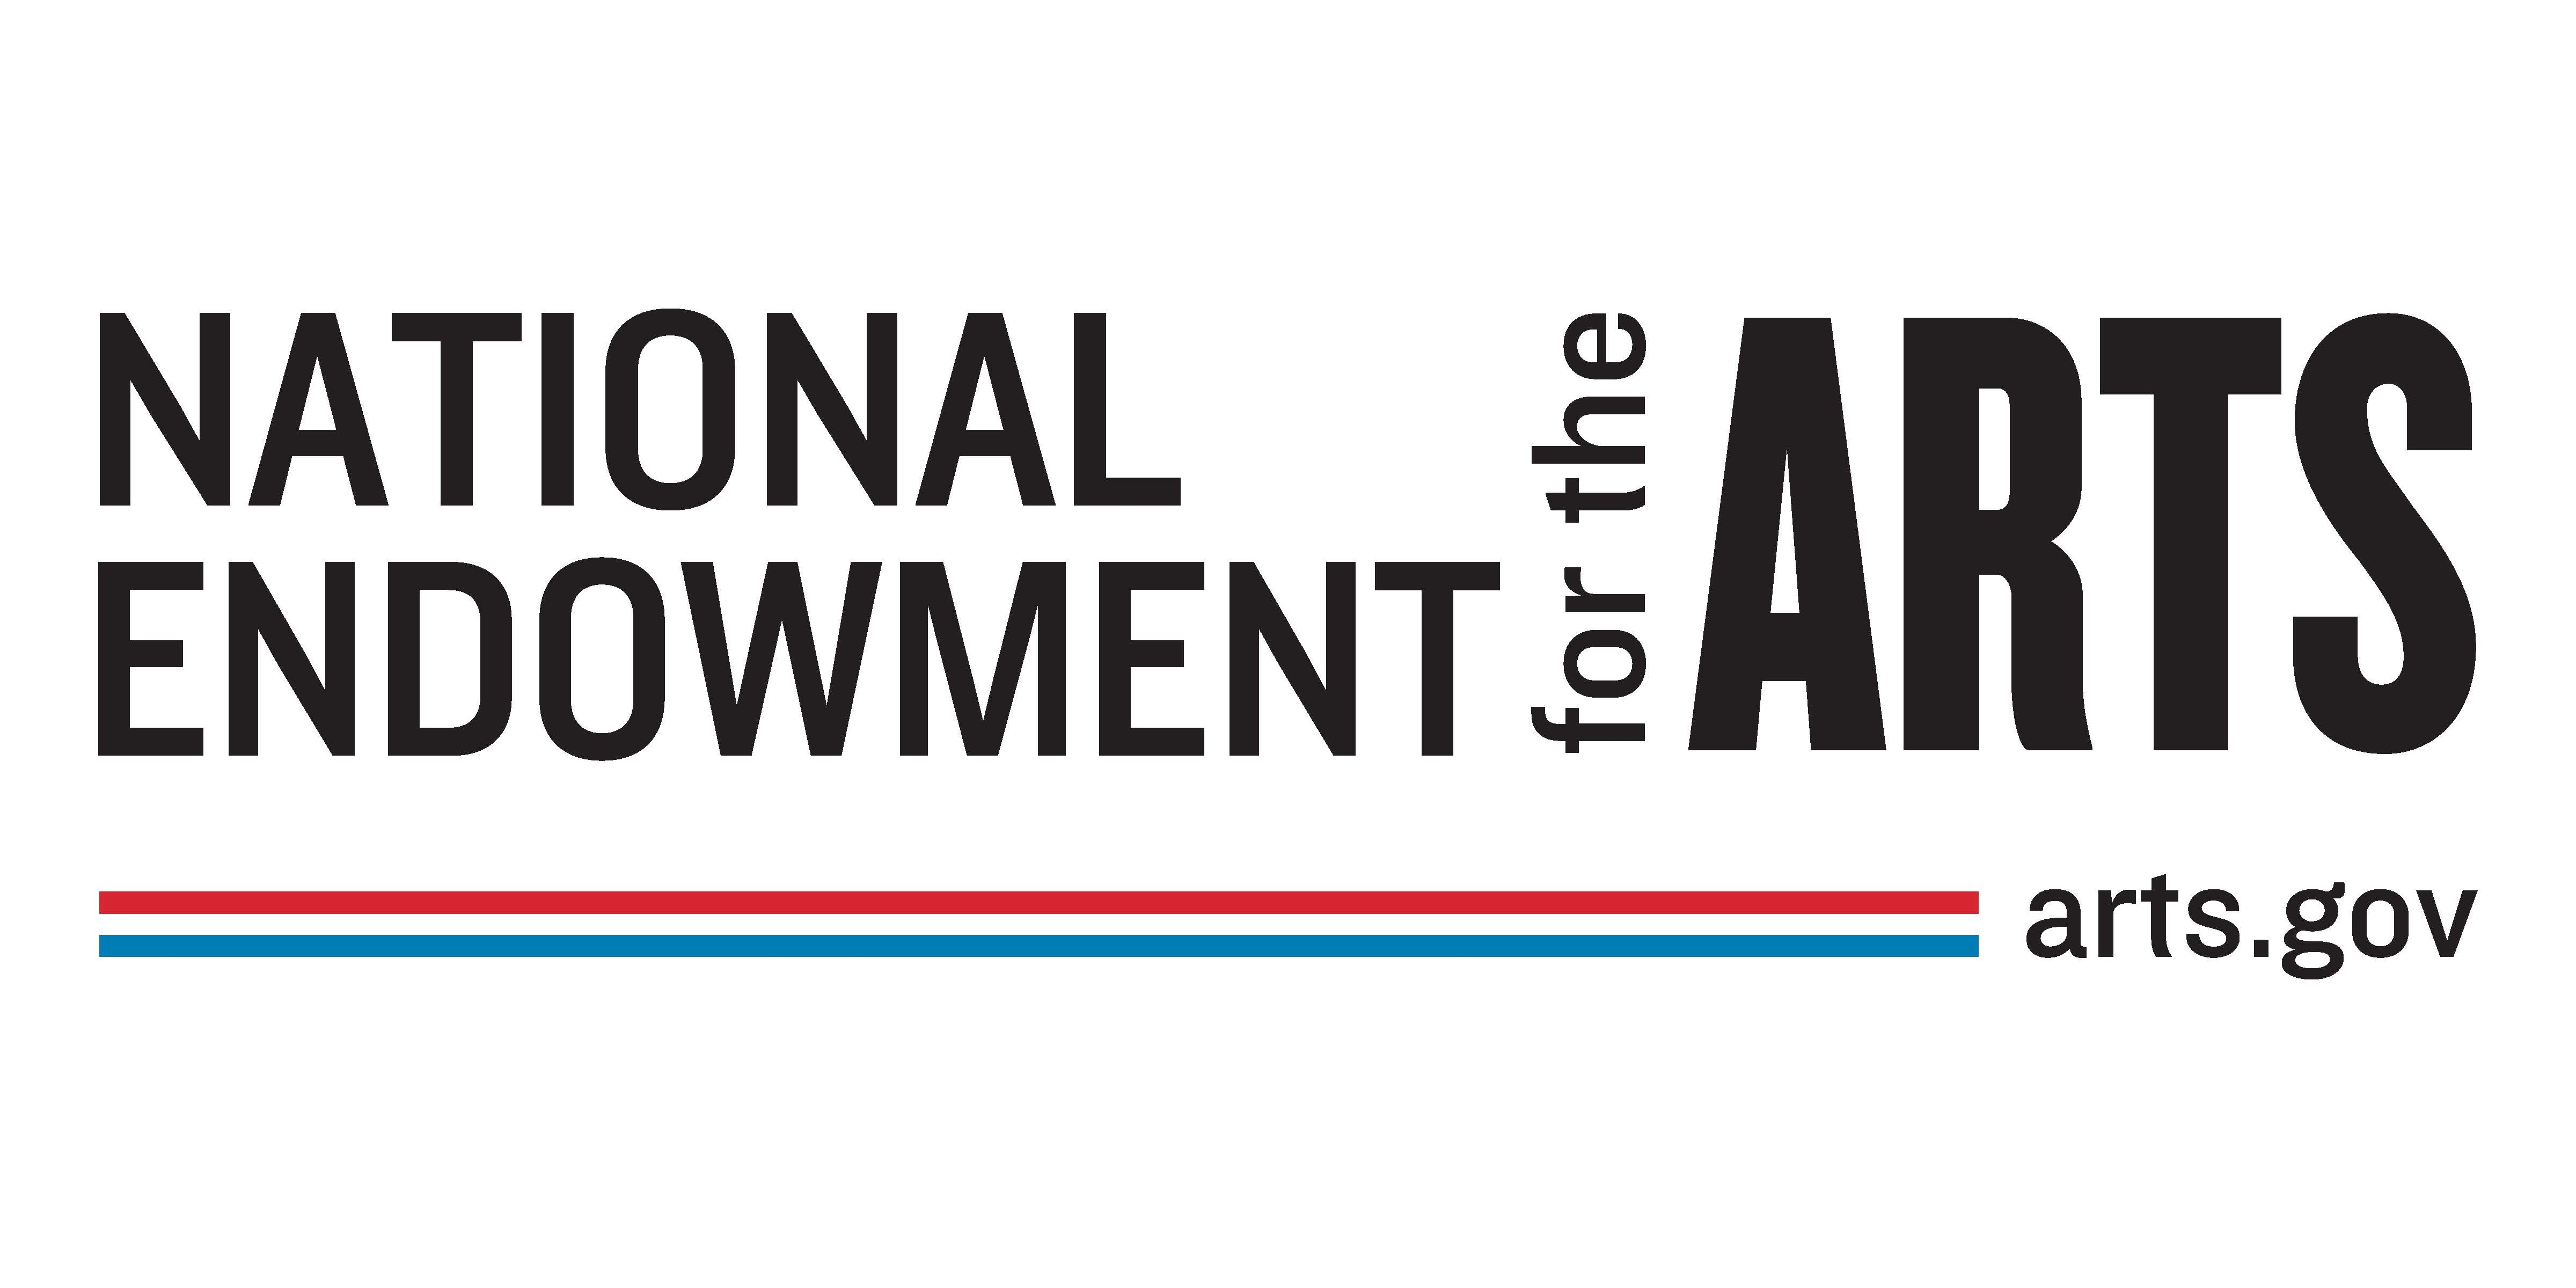 """""""National Endowment for the Arts"""" written in black on a white background, with a rainbow underline and """"arts.gov"""" underneath the bold text."""